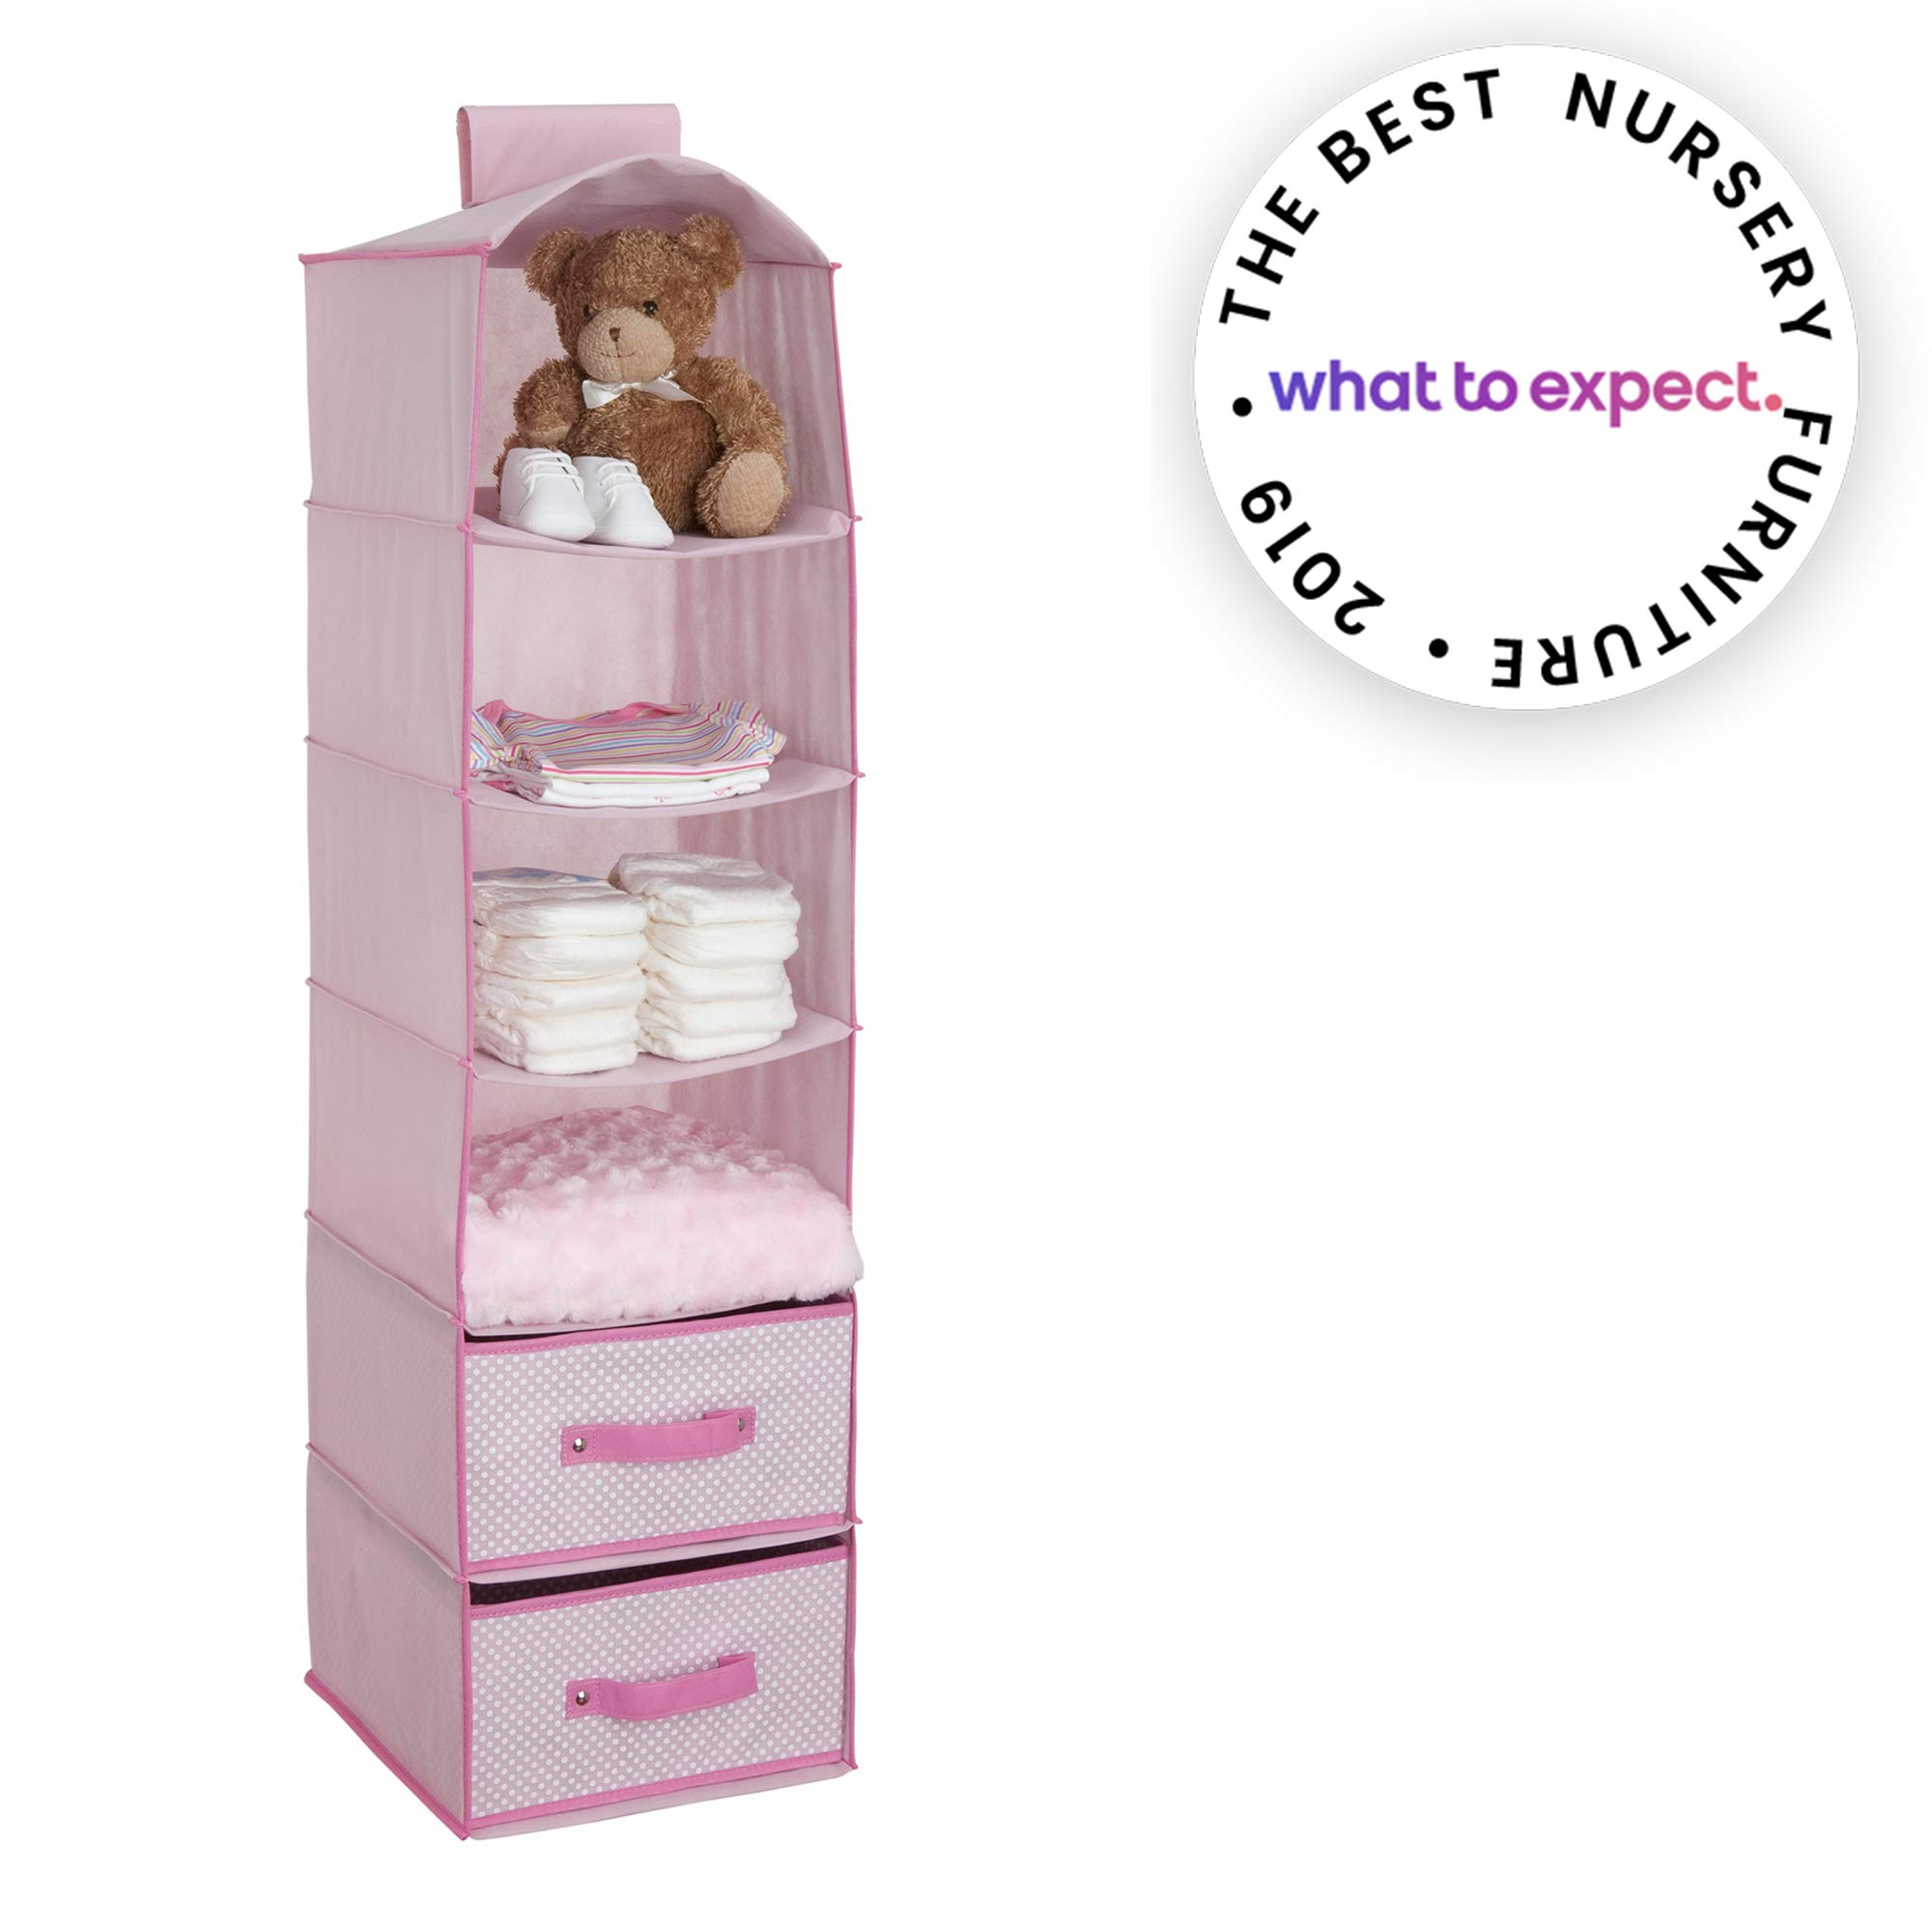 Delta Children 6 Shelf Storage with 2 Drawers, Barely Pink by Delta Children